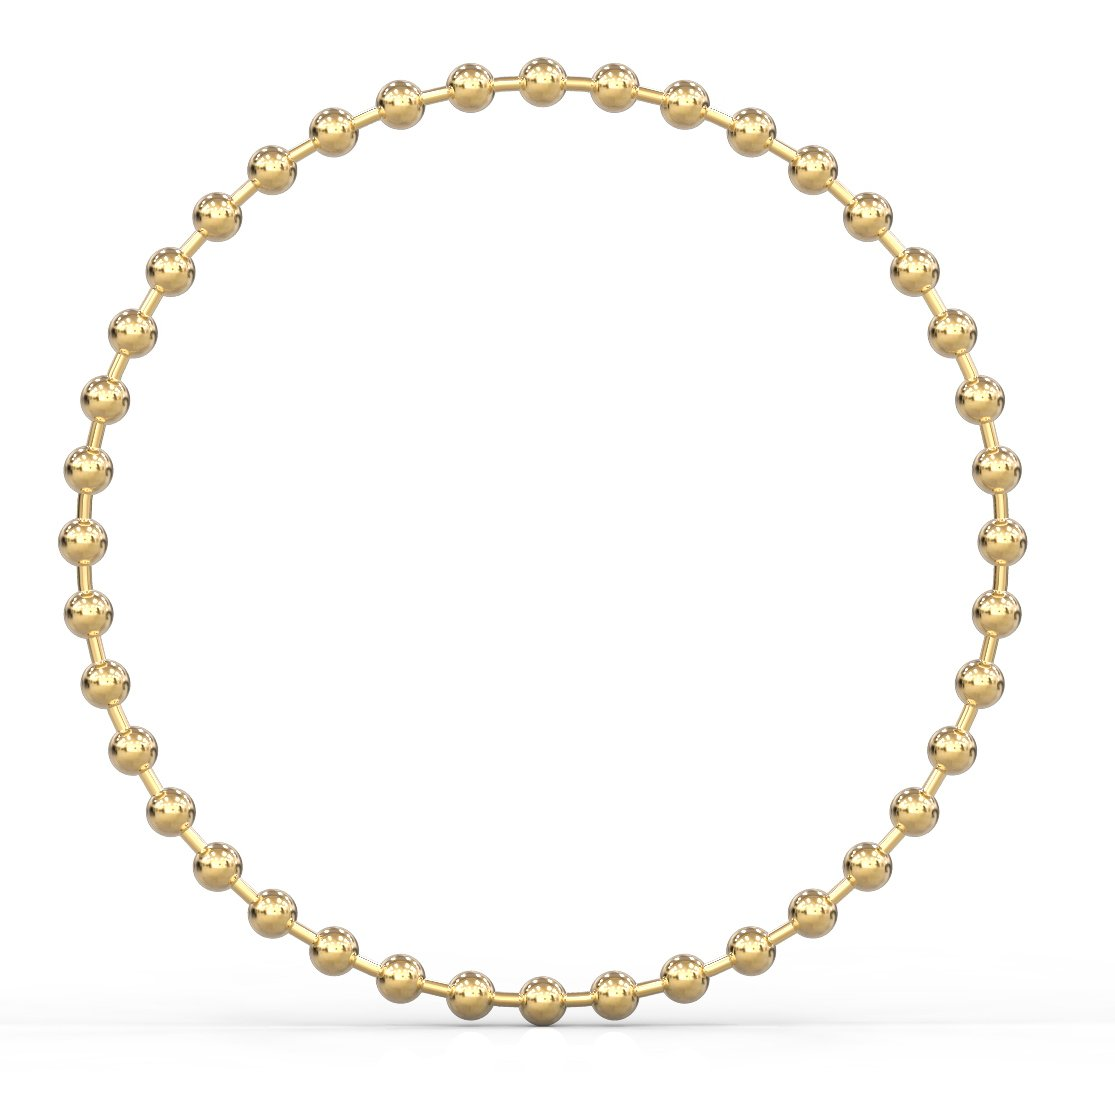 Benevolence LA Rings for Women: Stainless Steel Stacking Ring Soft 14k Gold Ball Chain Pair of Rings for Women Girls Dainty (Size 8)